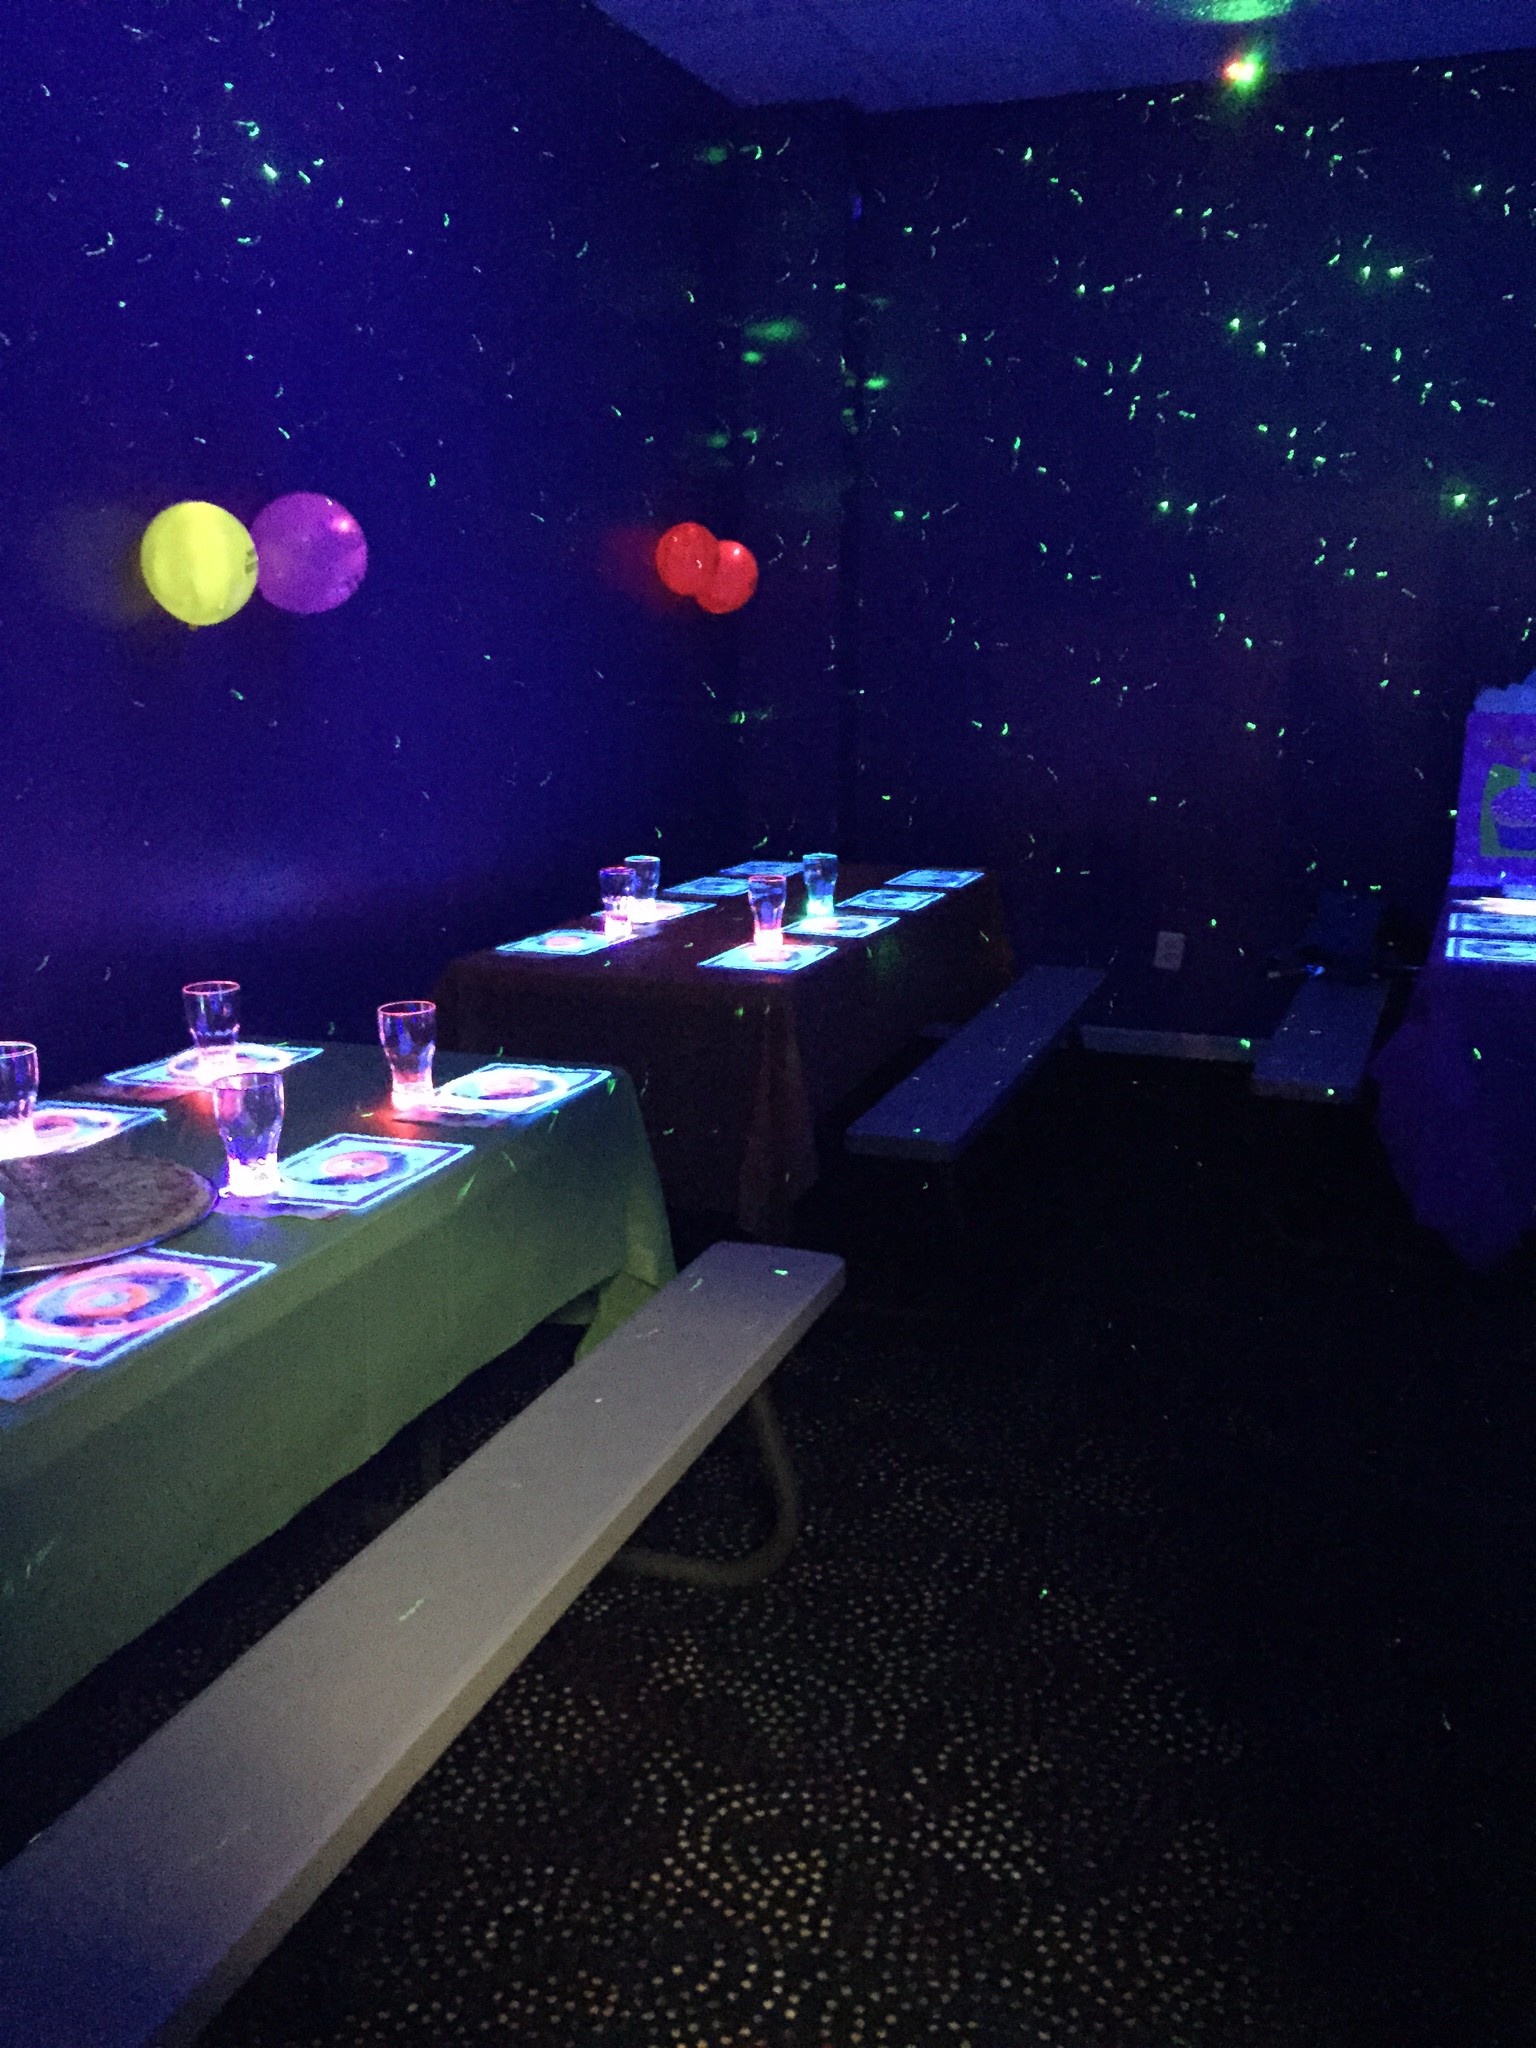 lighting a bubbles jeweled sensory rose growing group themed play light black lights blacklight glowing